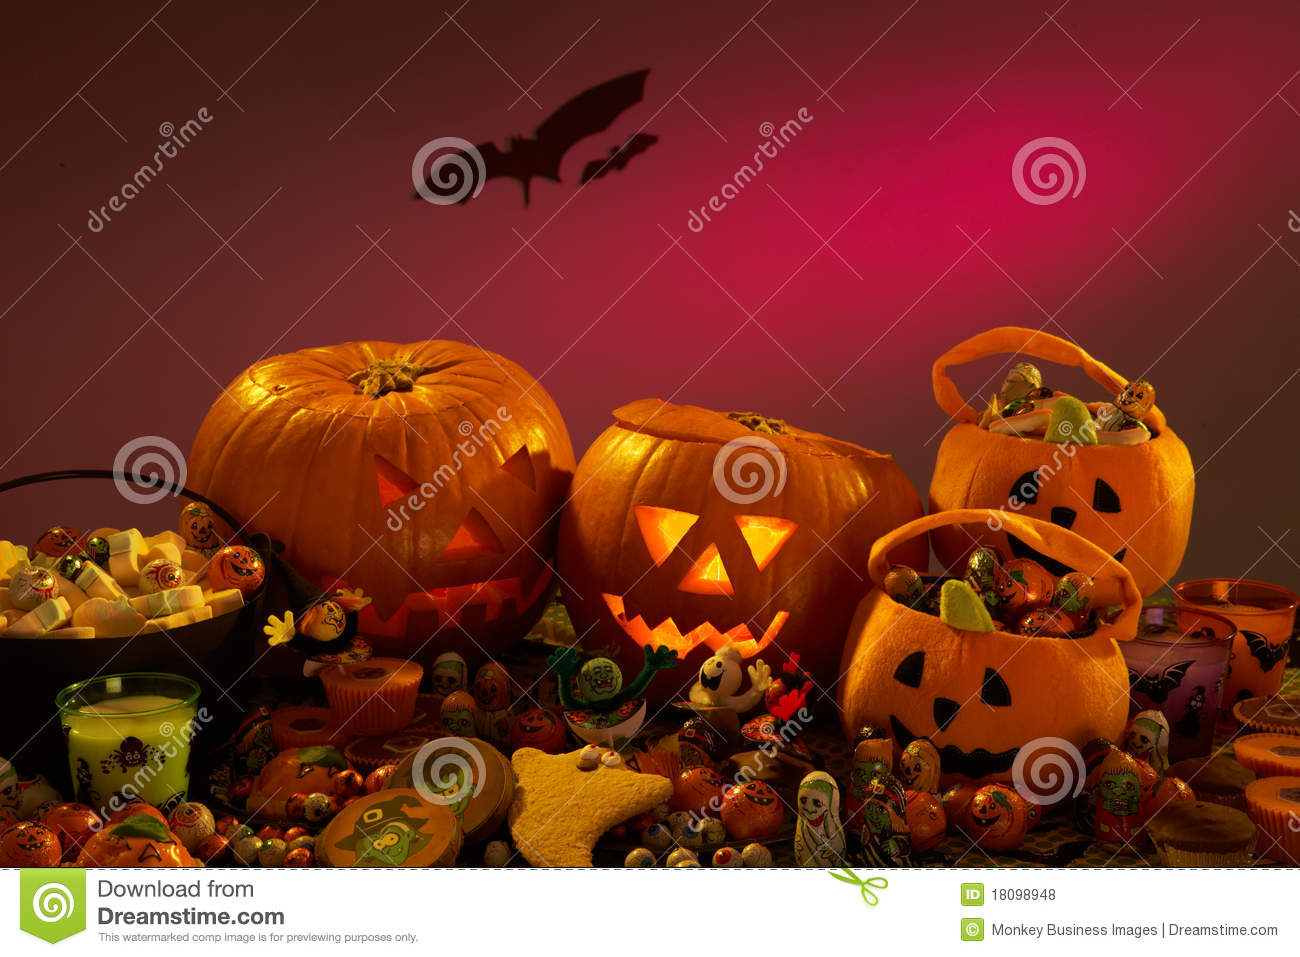 Halloween Party Decorations With Pumpkins Royalty Free